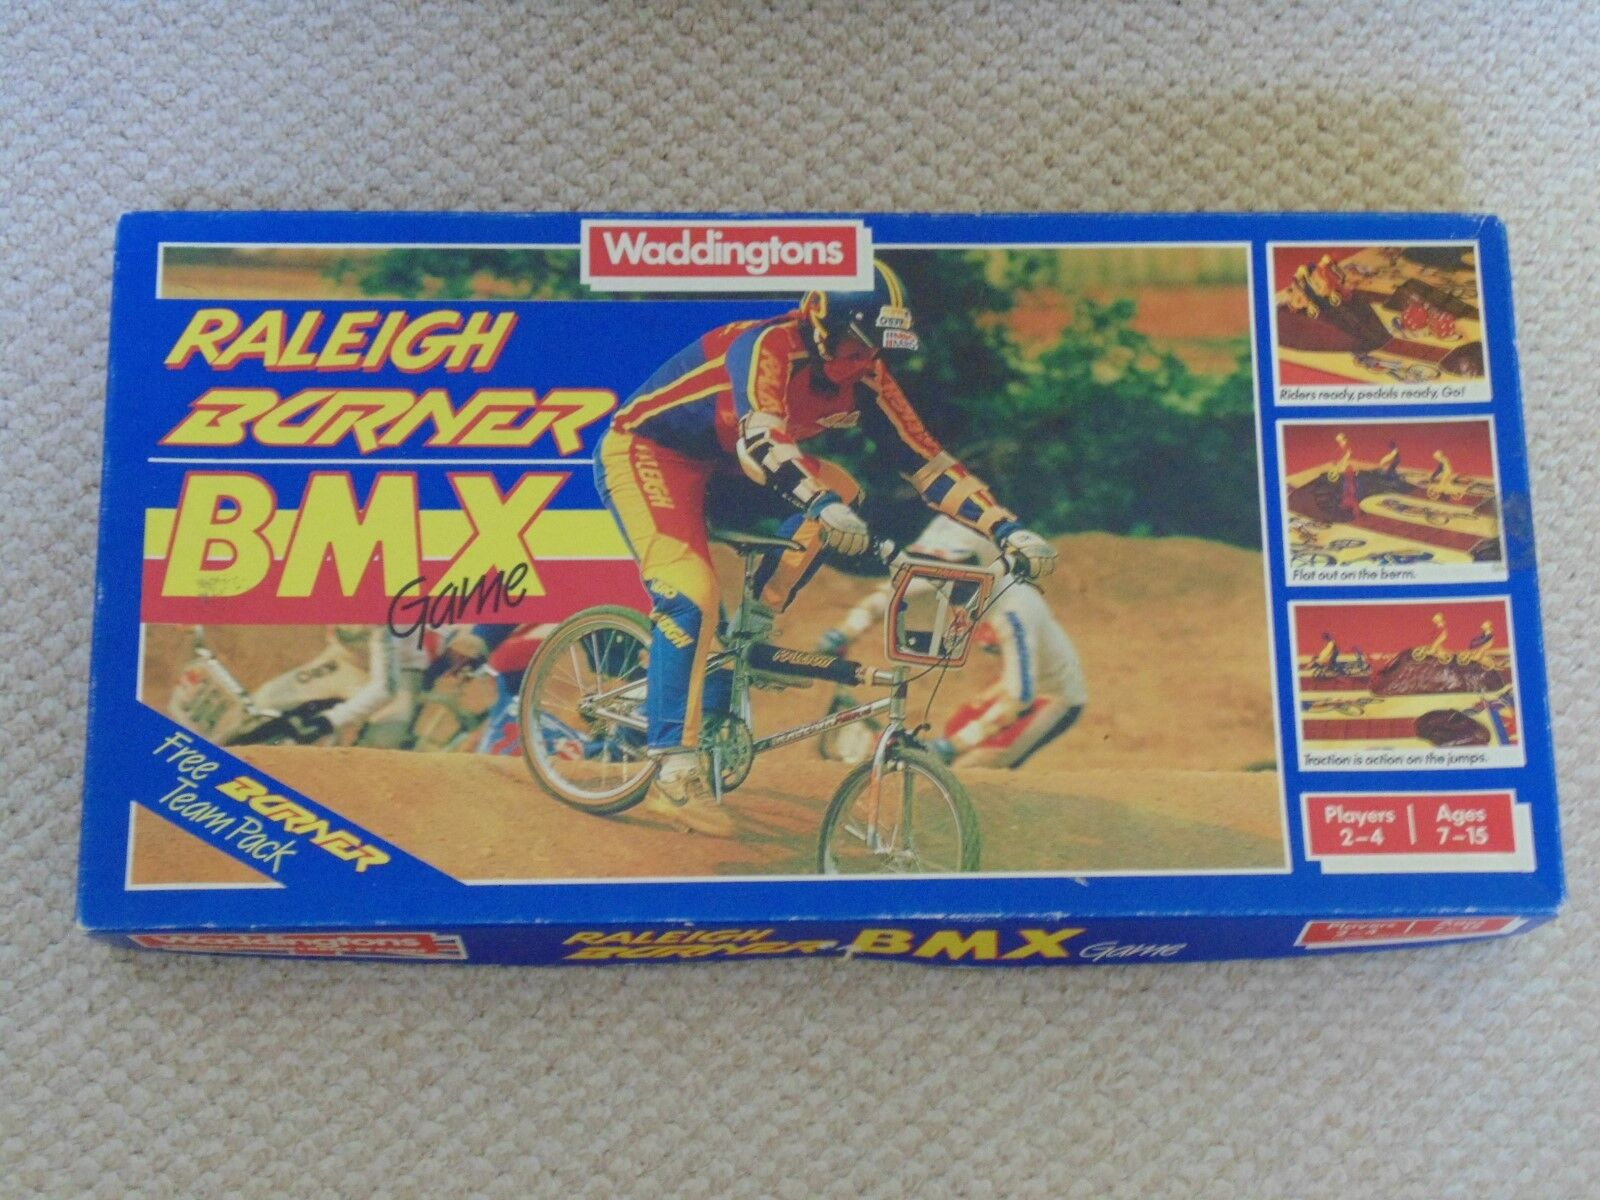 RALEIGH BURNER BMX RETRO GAME BOXED 1985 WADDINGTONS 100% COMPLETE RARE + POSTER